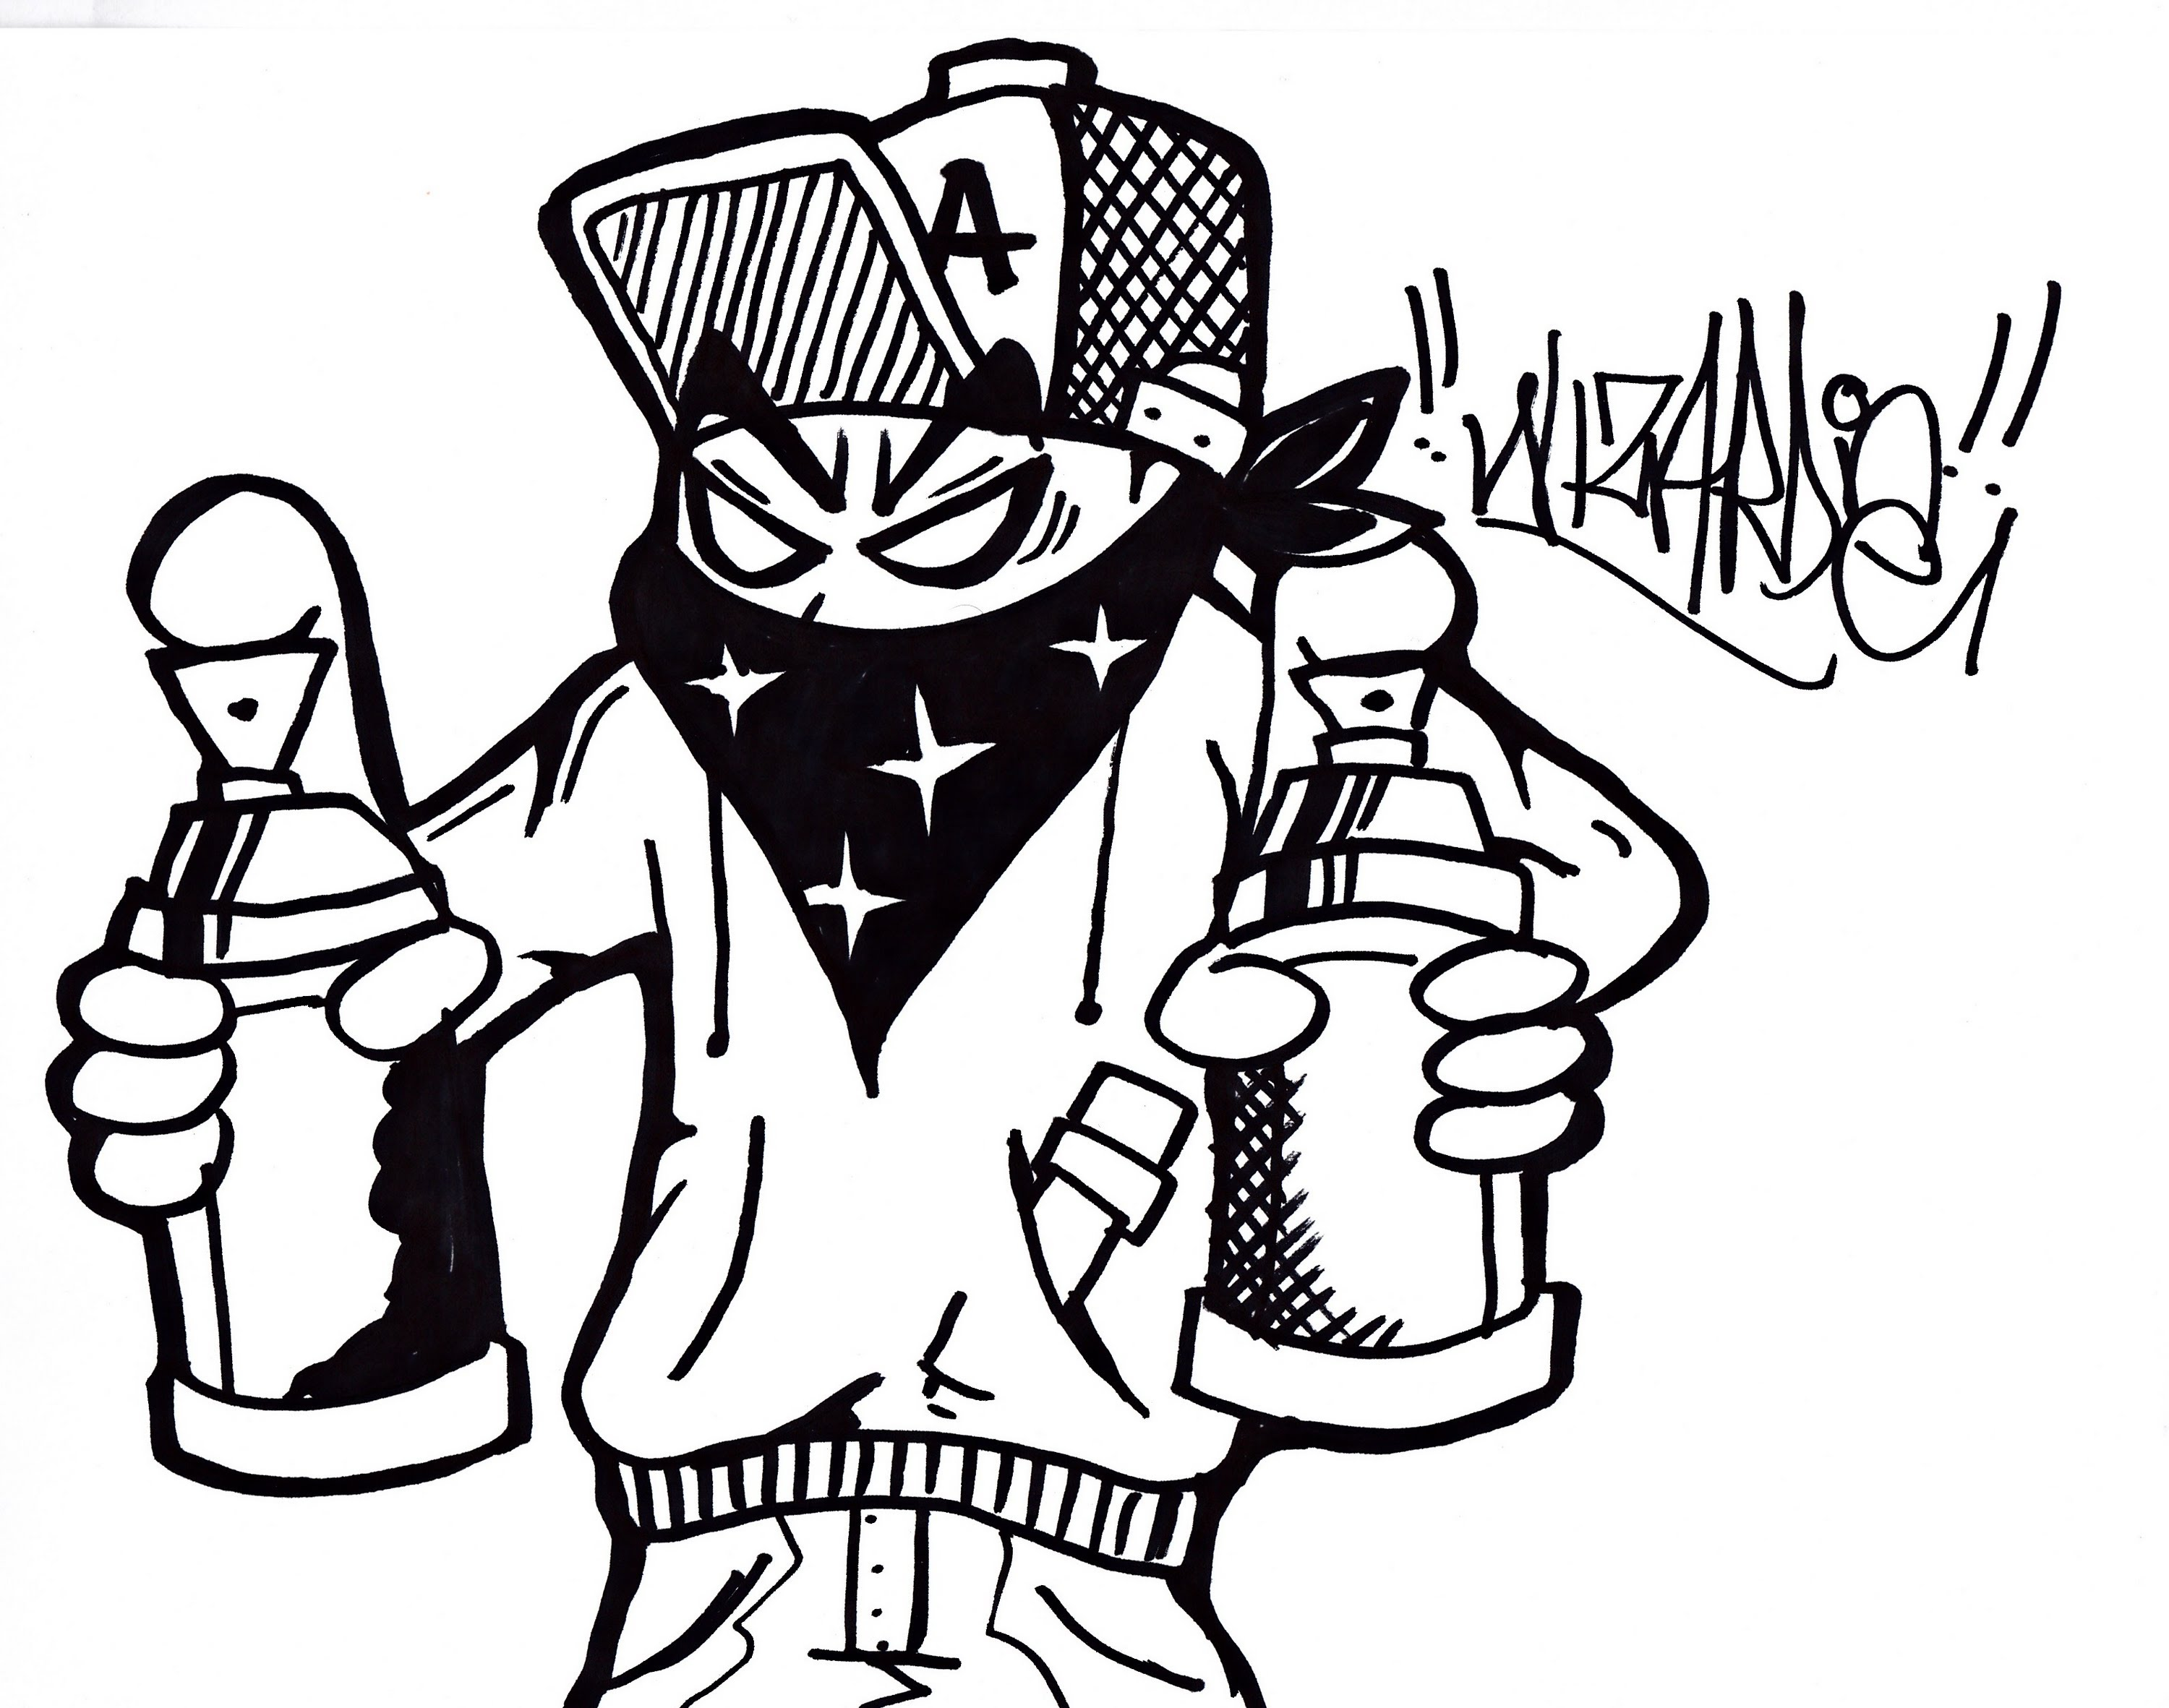 3000x2363 How To Draw A Graffiti Character Holding Spraycans.